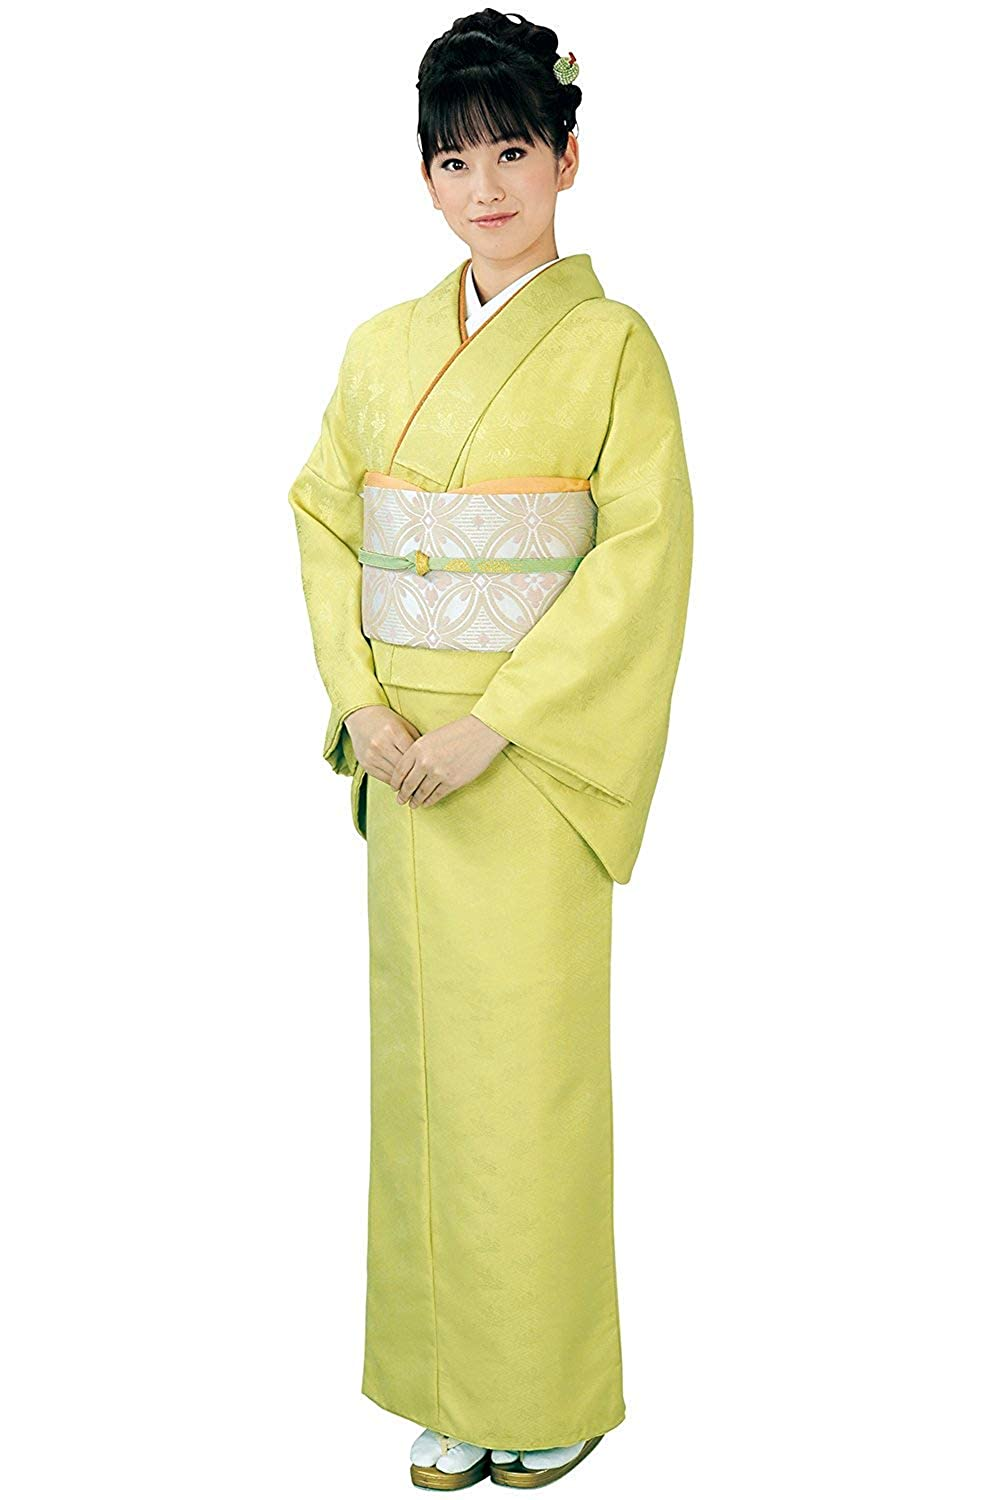 1 KYOETSU Women's Japanese Awase Kimono Solid color Background Pattern